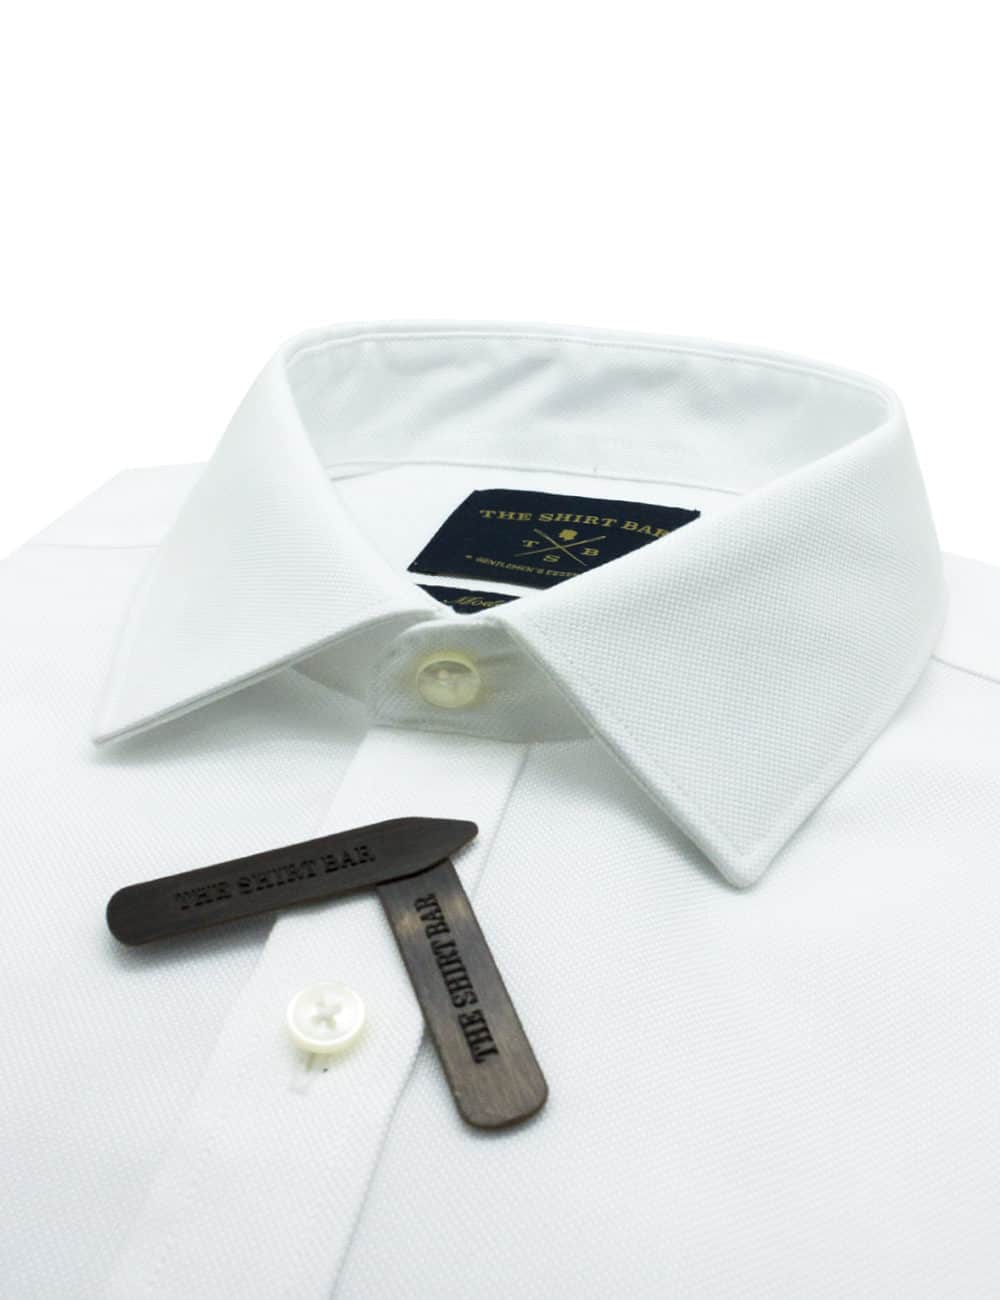 Modern Fit Double Ply Non-iron 100% Premium Cotton Solid White Long Sleeve Single Cuff Shirt with Long Lasting White Finishing MF2A2.NOS